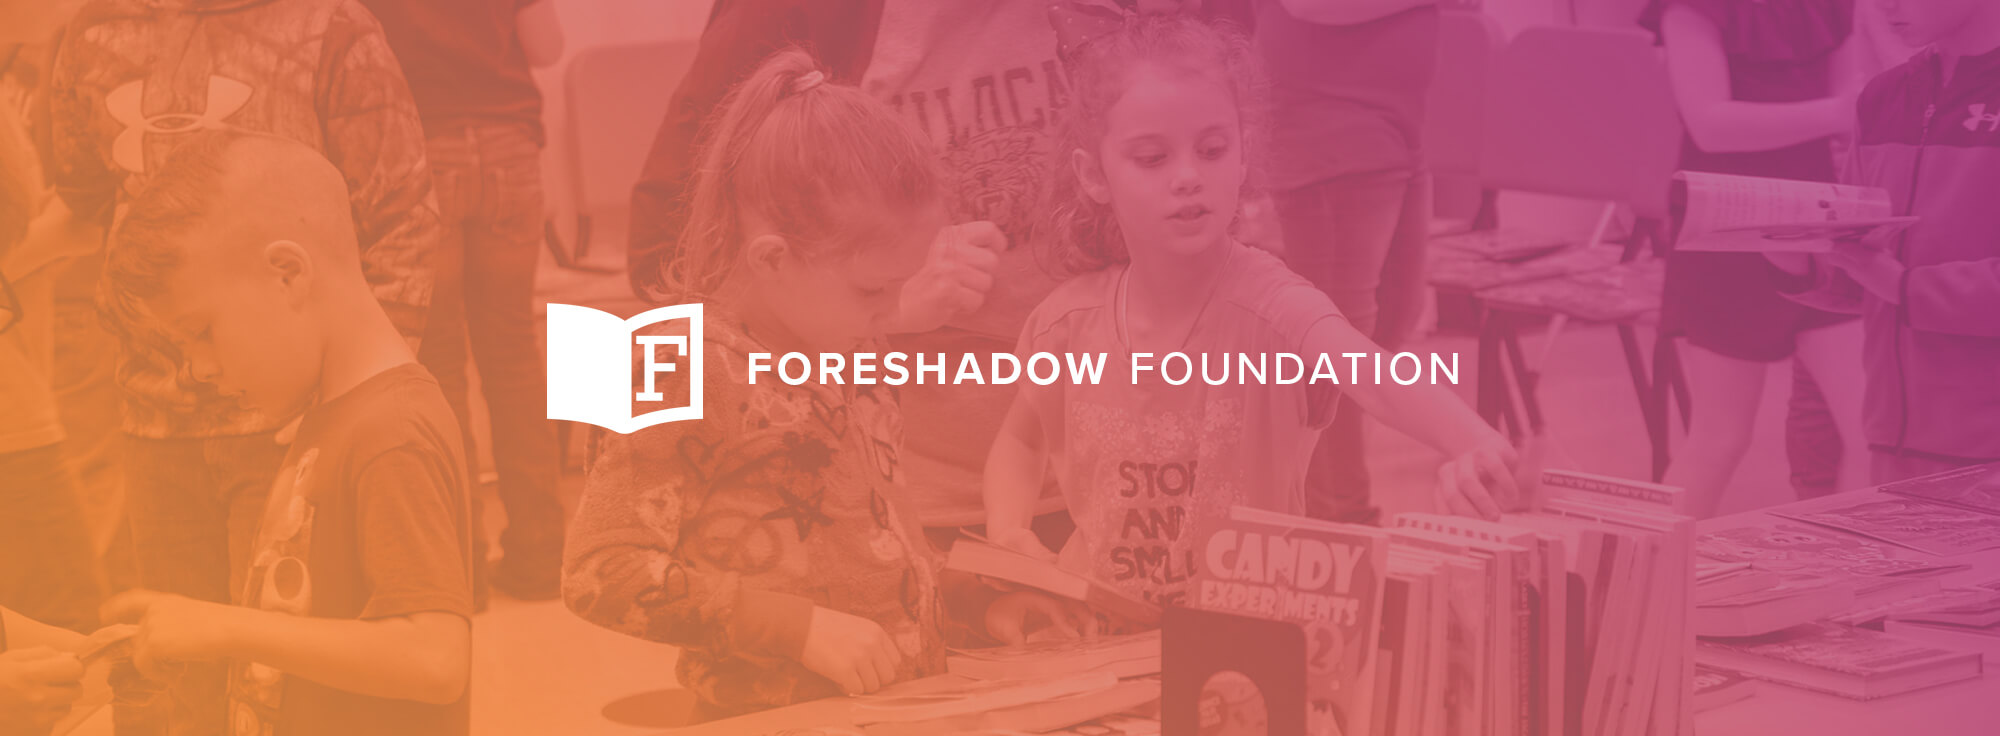 foreshadow foundation volunteer time off image